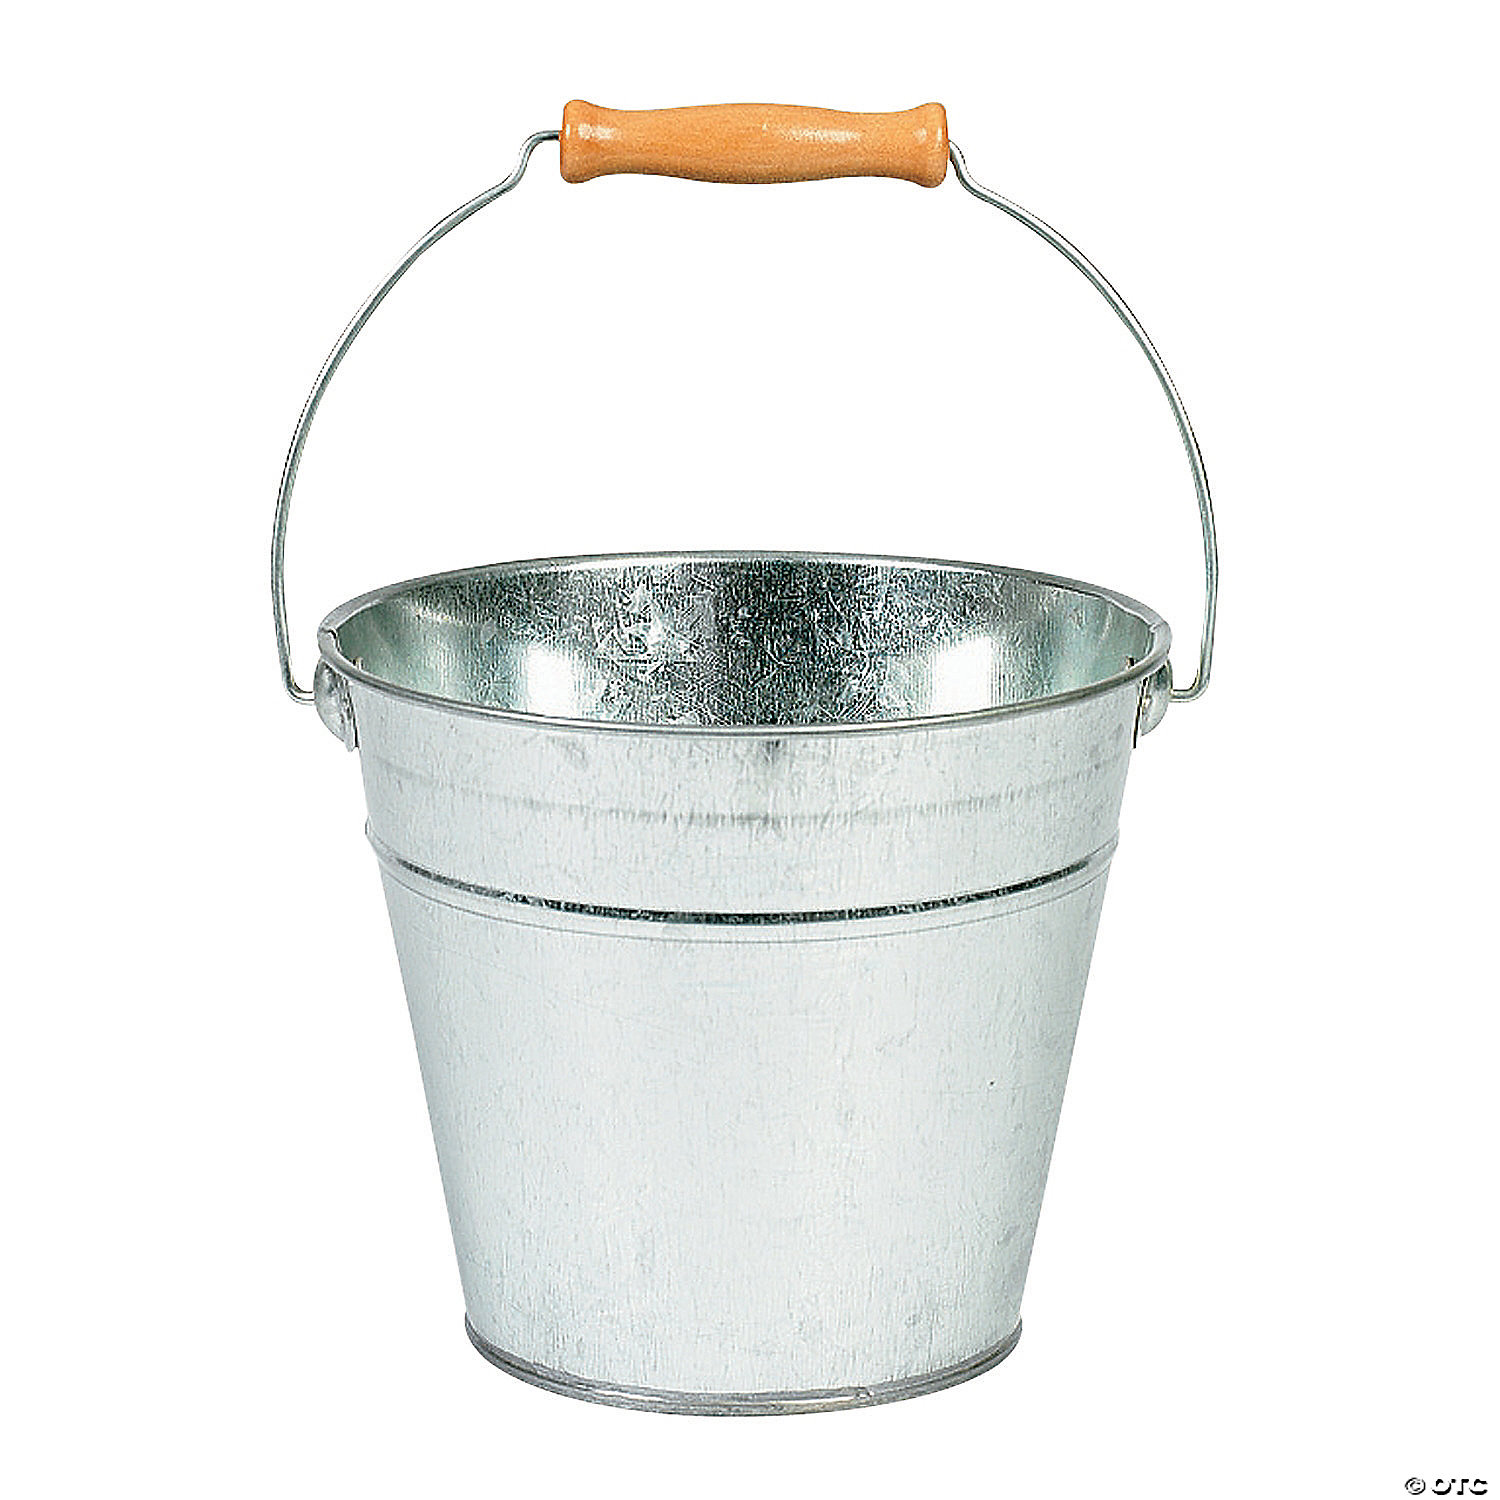 quickview  image of DIY Large Silver Tin Pail with sku:65/90117